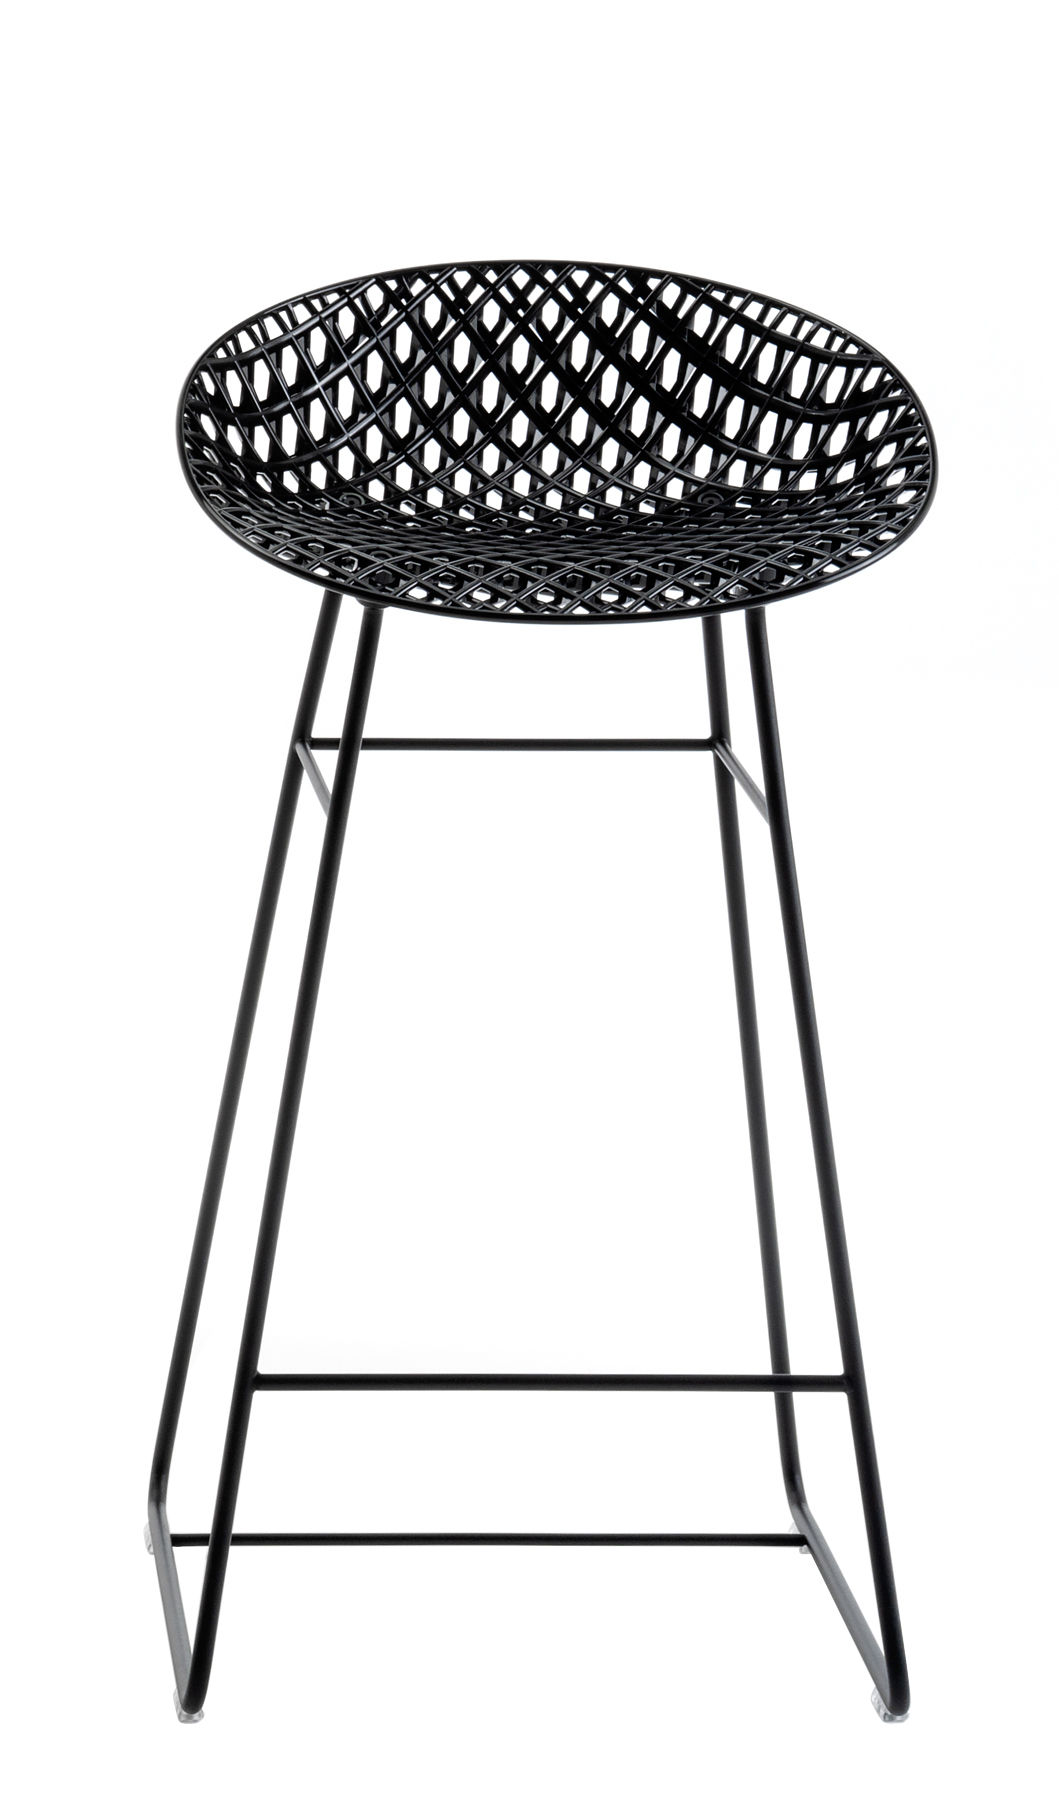 Furniture - Bar Stools - Smatrik High stool - / Outdoor - H 65 cm by Kartell - Black - Lacquered stainless steel, Polycarbonate